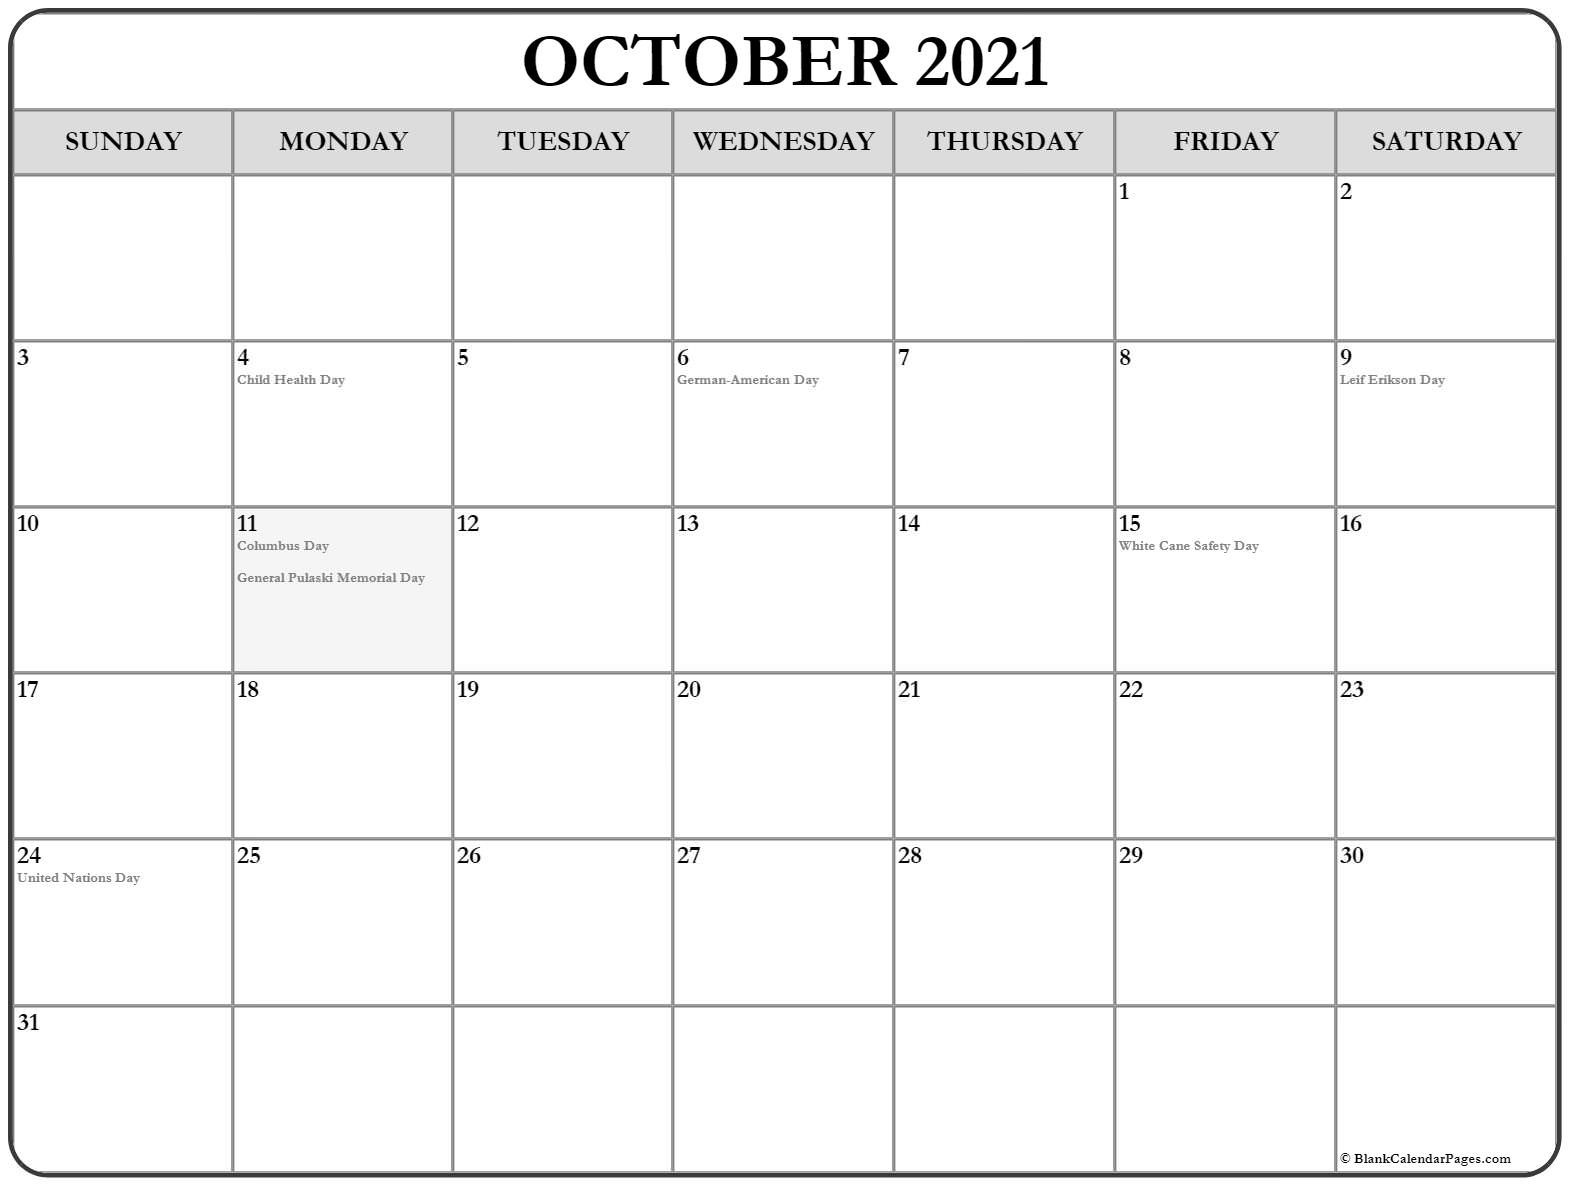 October 2020 USA holiday calendar. Incluides US federal holidays and observations